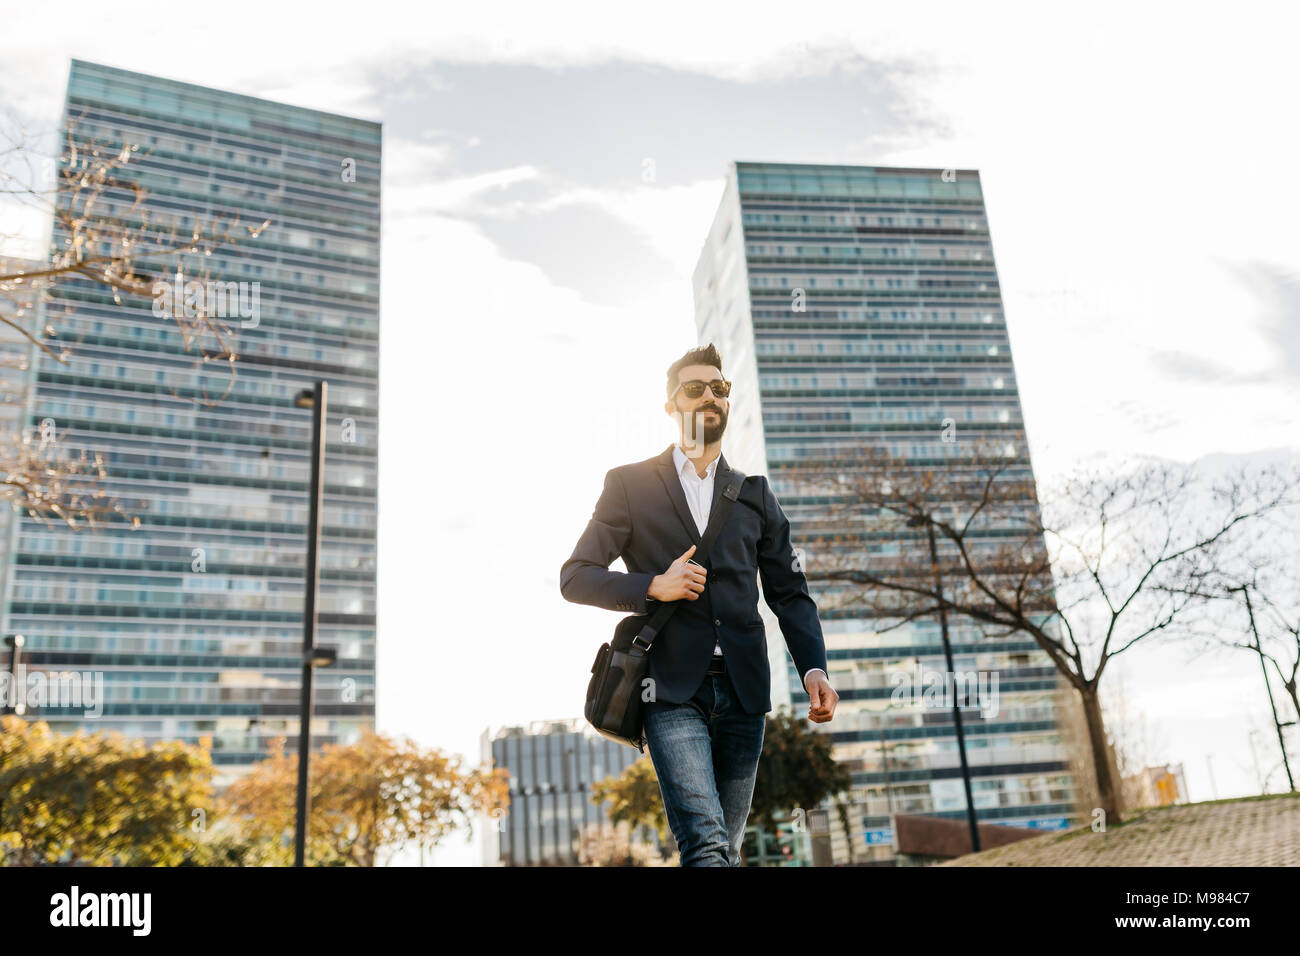 Businessman wearing sunglasses walking outside office building - Stock Image